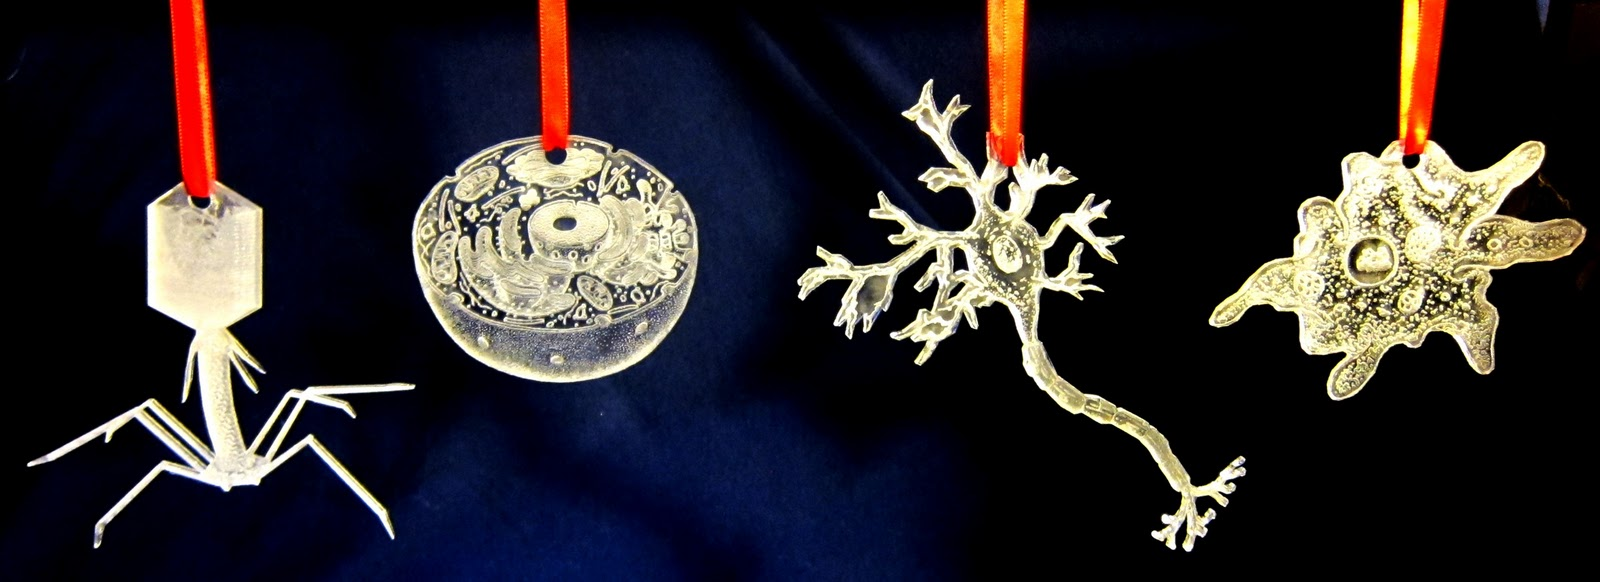 Themed christmas ornaments - The Micro Organisms Ornaments